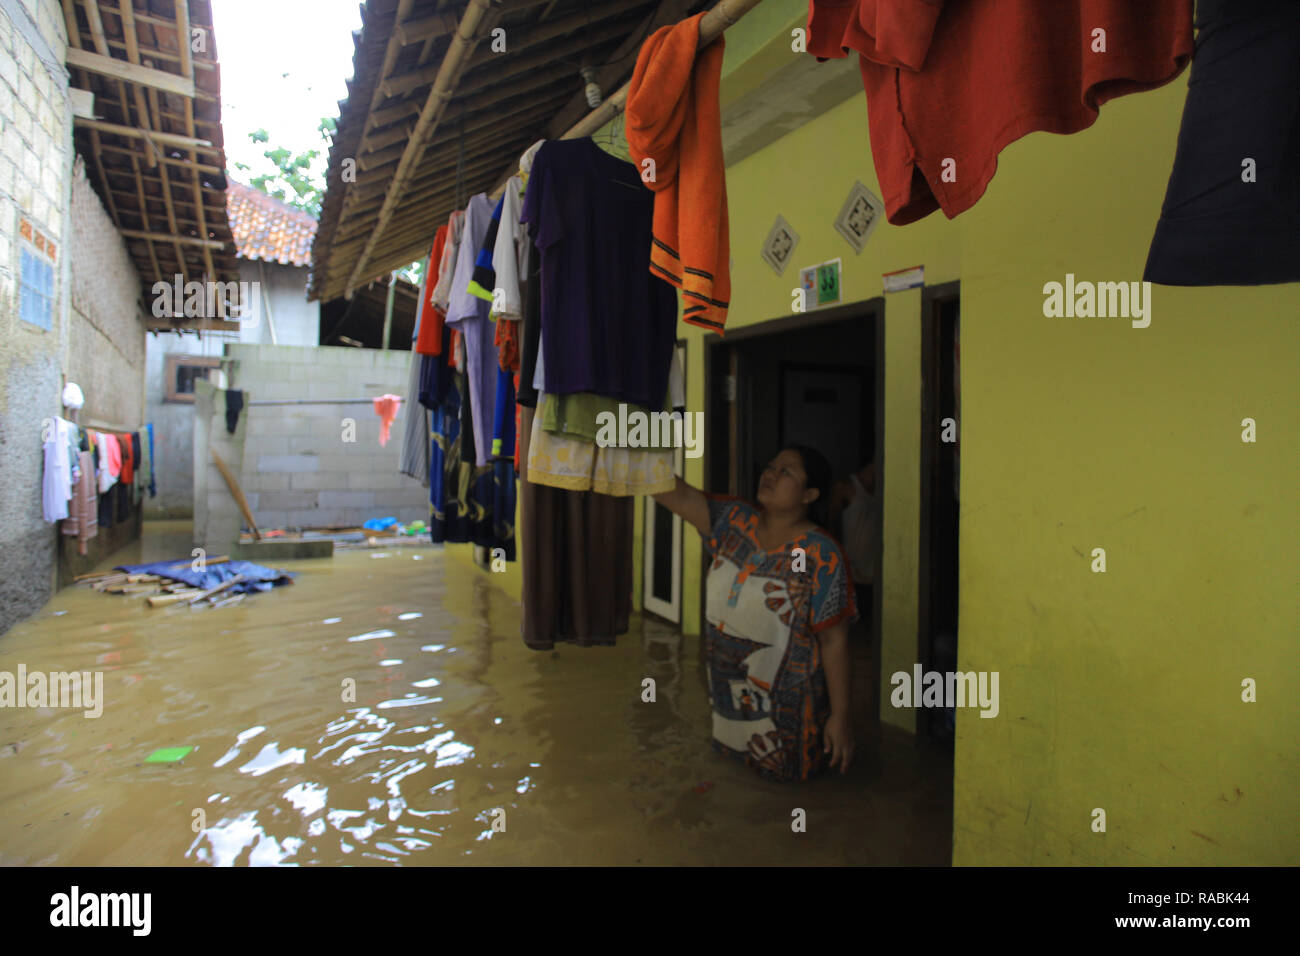 Resident seen cleaning her house during a flood. Dozens of residents were evacuated due to the flood disaster that hit village Rancamaya Cikobak RT 03/04, Rancamaya, Bogor City. This flood began to hit dozens of houses in Kampung Rancamaya Cikobak due to the flow of the Cisadane tributary, the Cimakaci River overflowing. - Stock Image